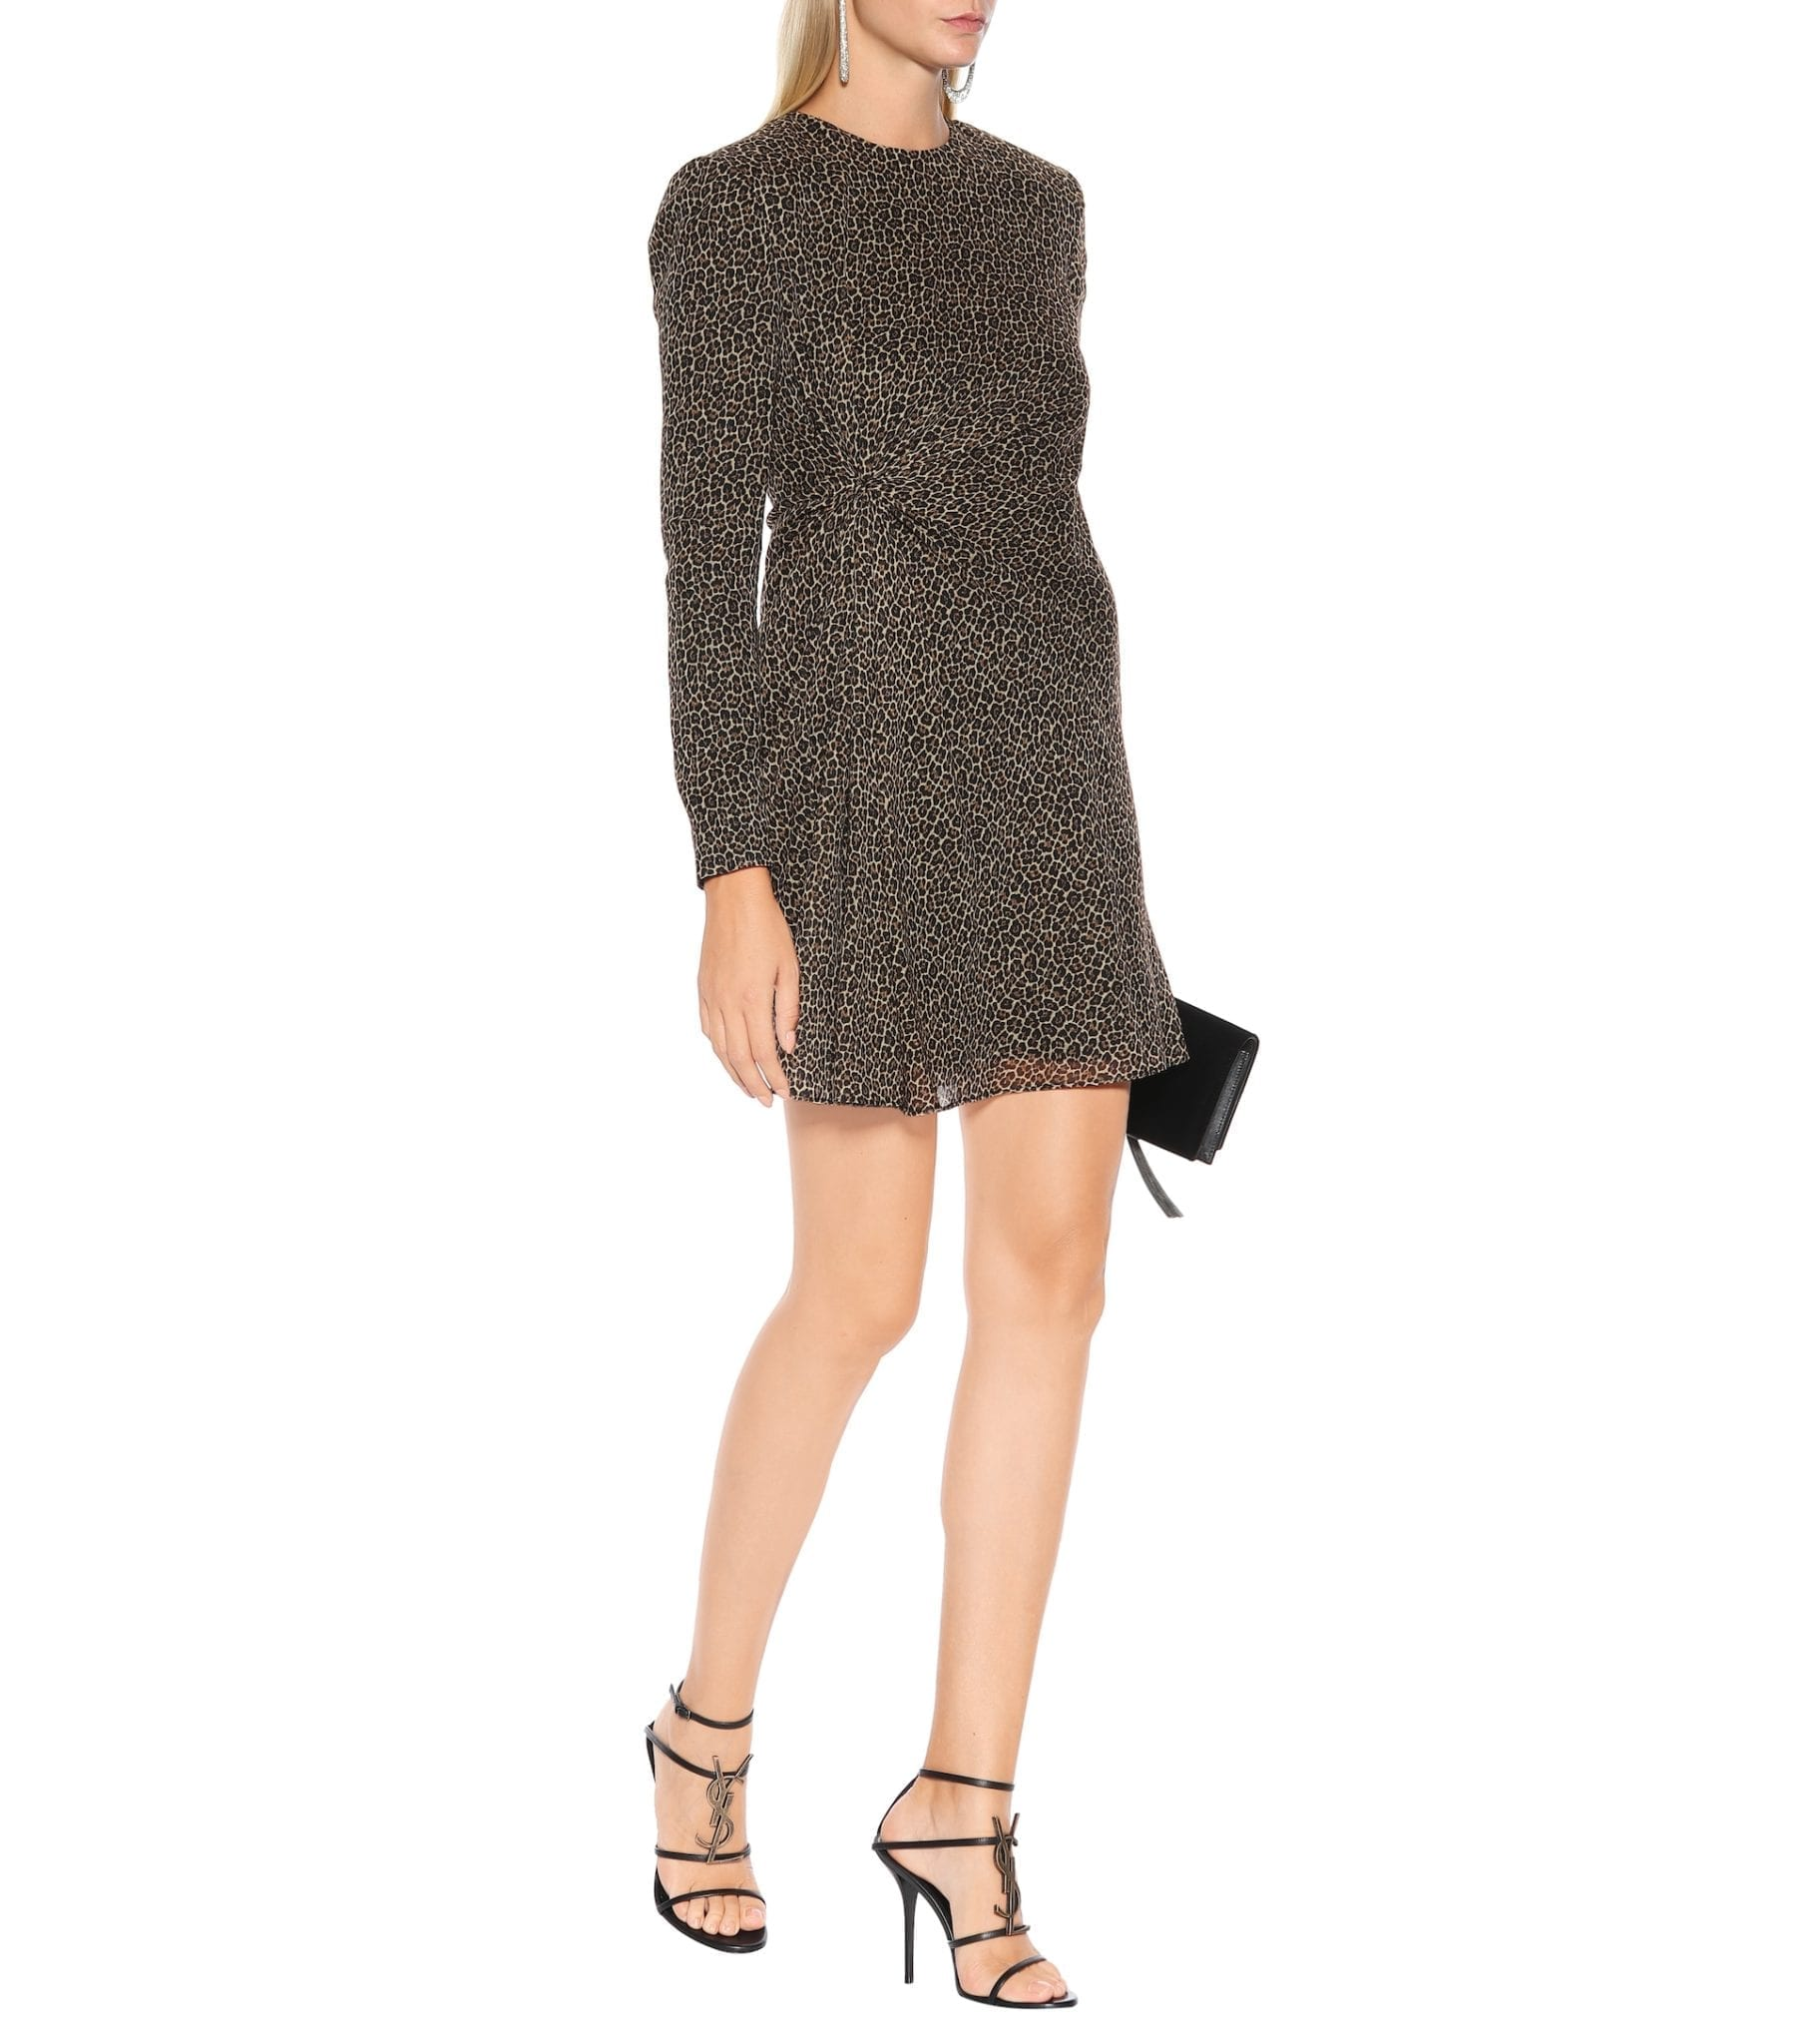 SAINT LAURENT Leopard Virgin Wool Mini Black Dress